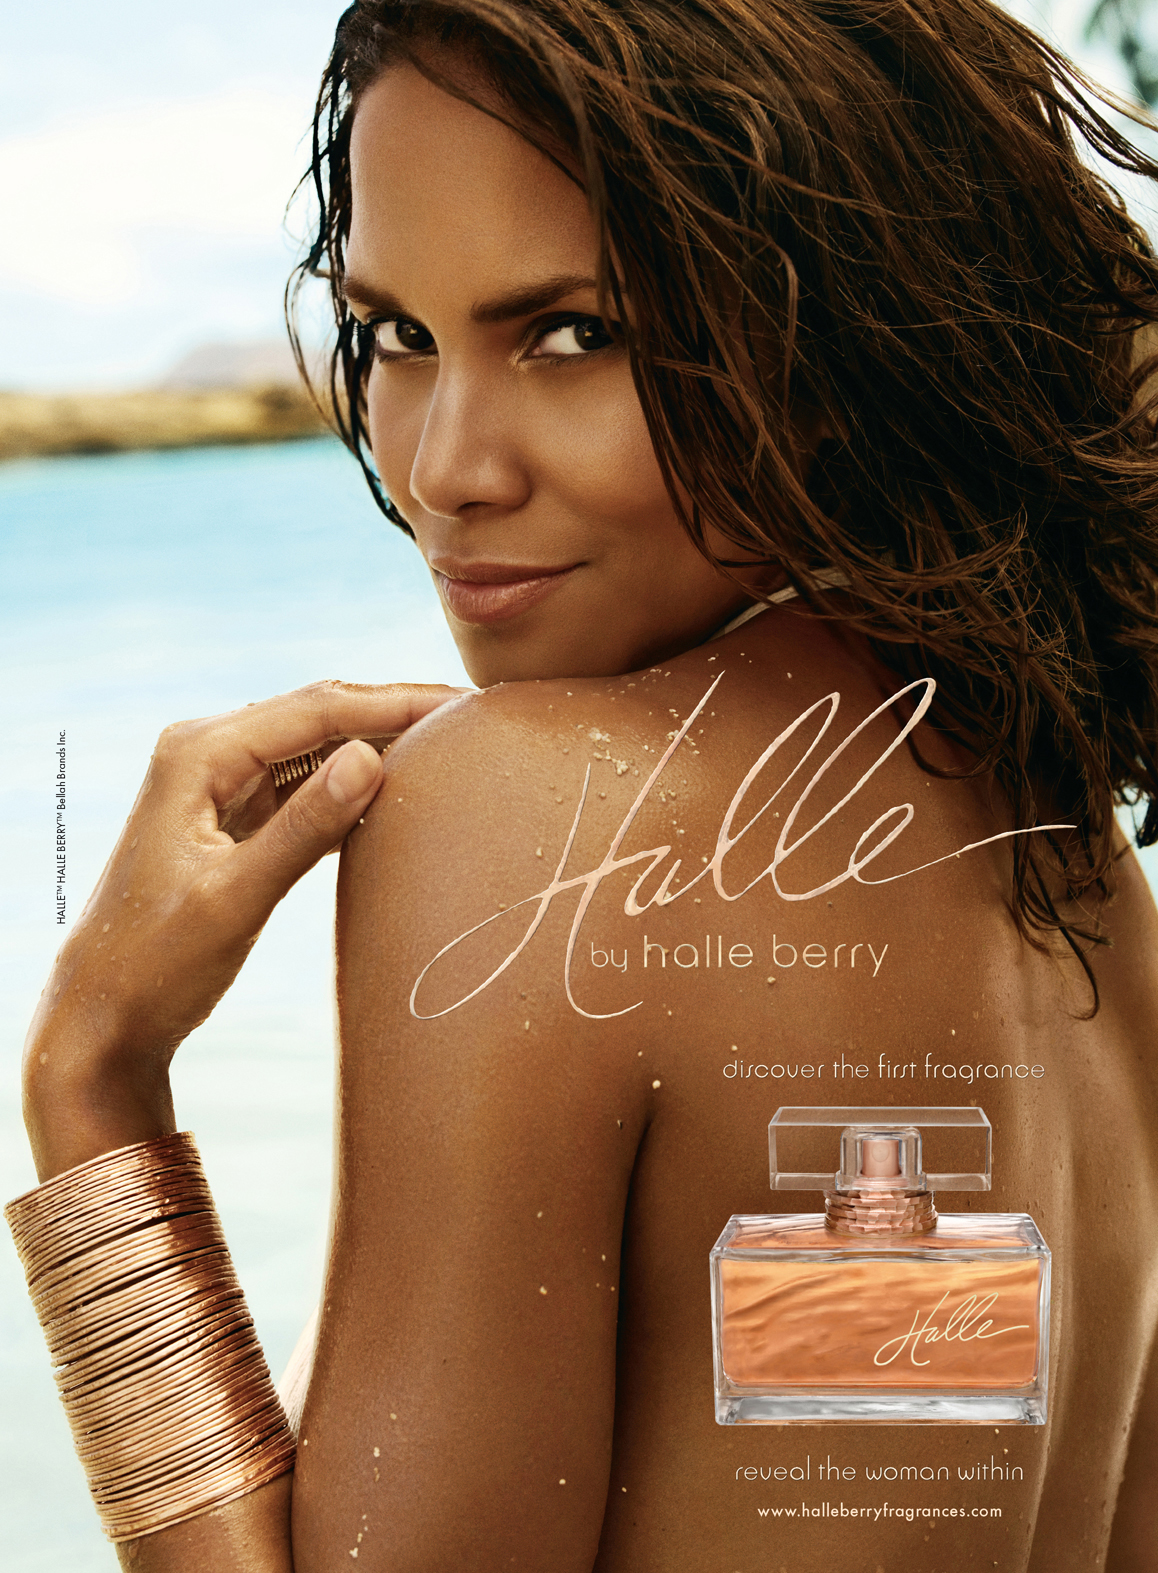 Halle Perfume By Halle Berry For Women on perfumes by jennifer lopez